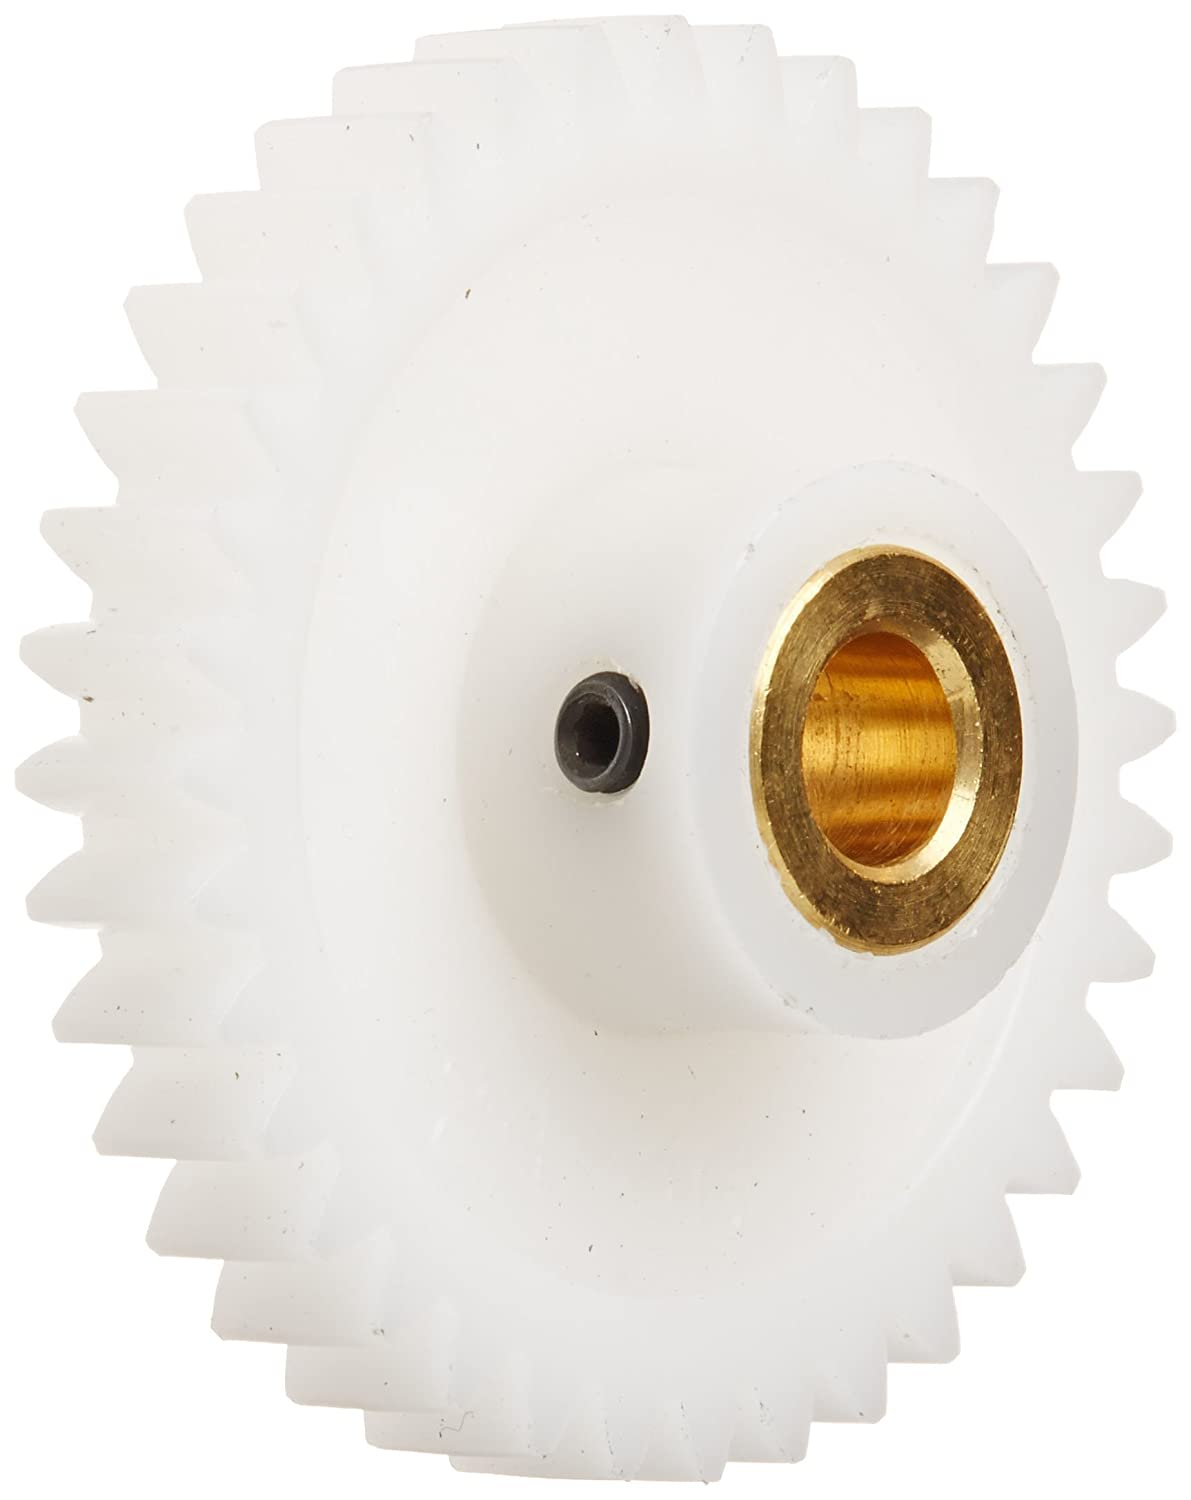 Inch 24 Pitch 1.583 OD Boston Gear YPB2436 Spur Gear 0.250 Face Width 0.250 Bore Molded Delrin with Brass Inserts 36 Teeth